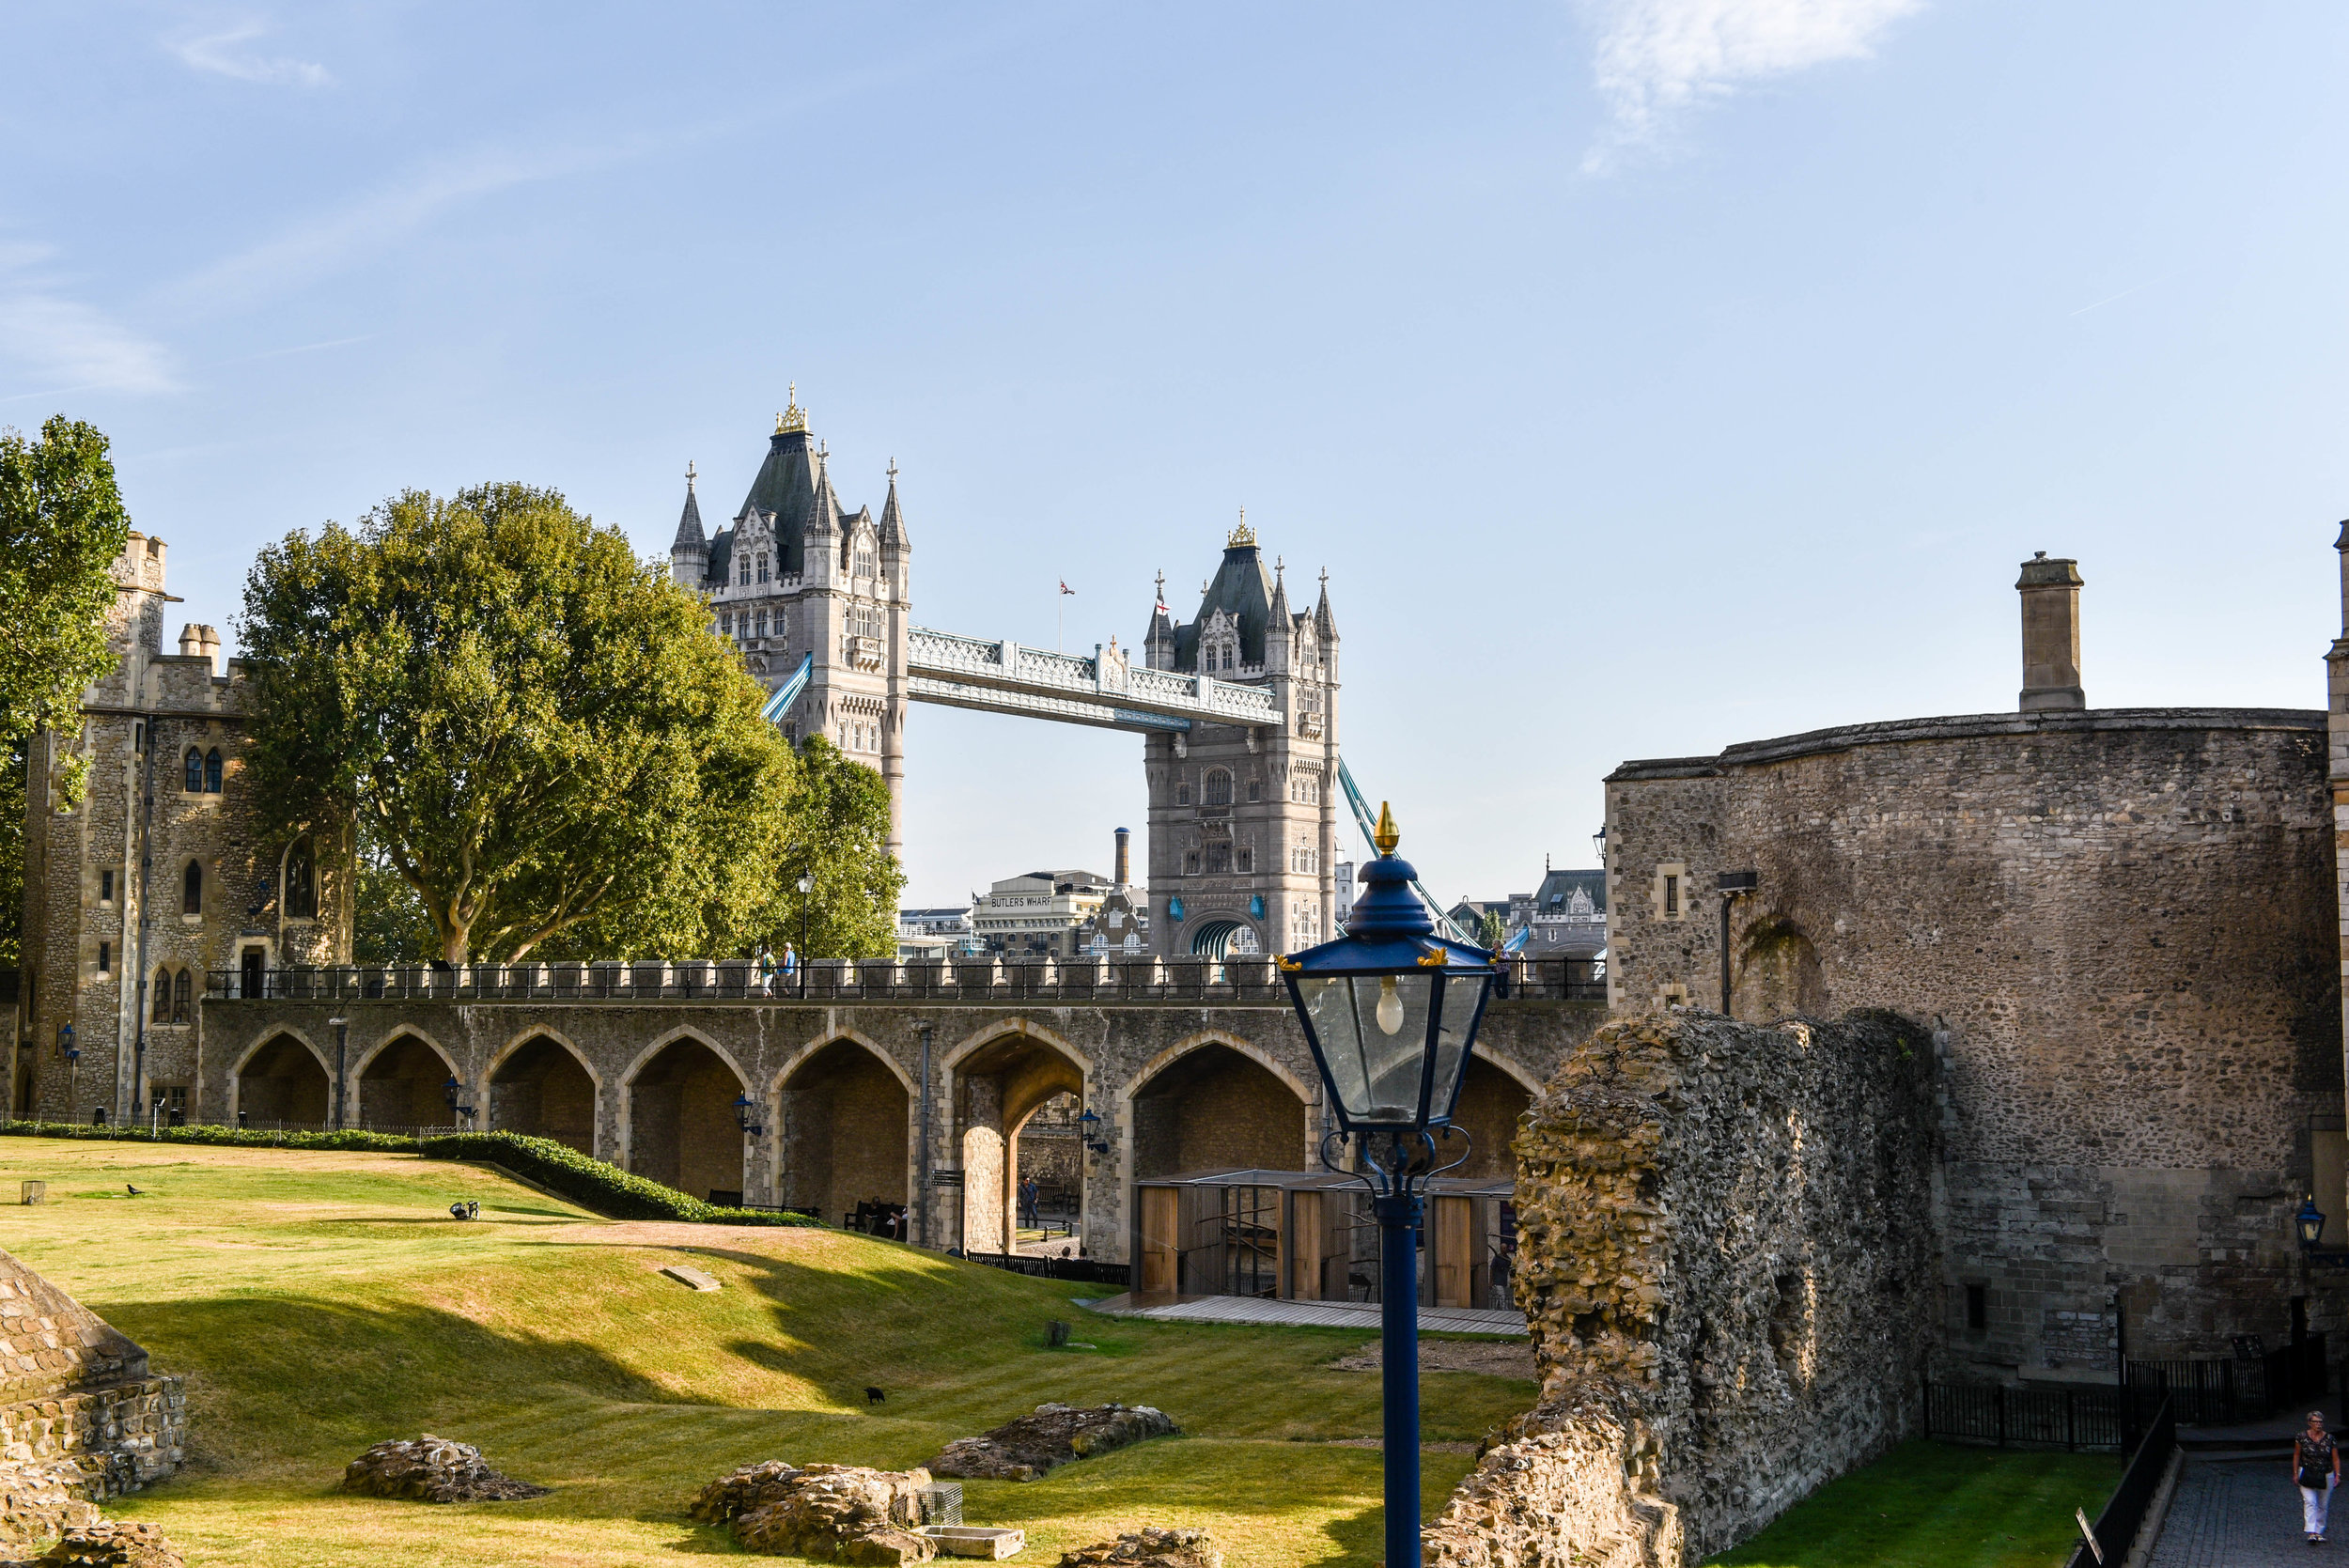 Inside the Tower of London Fortress